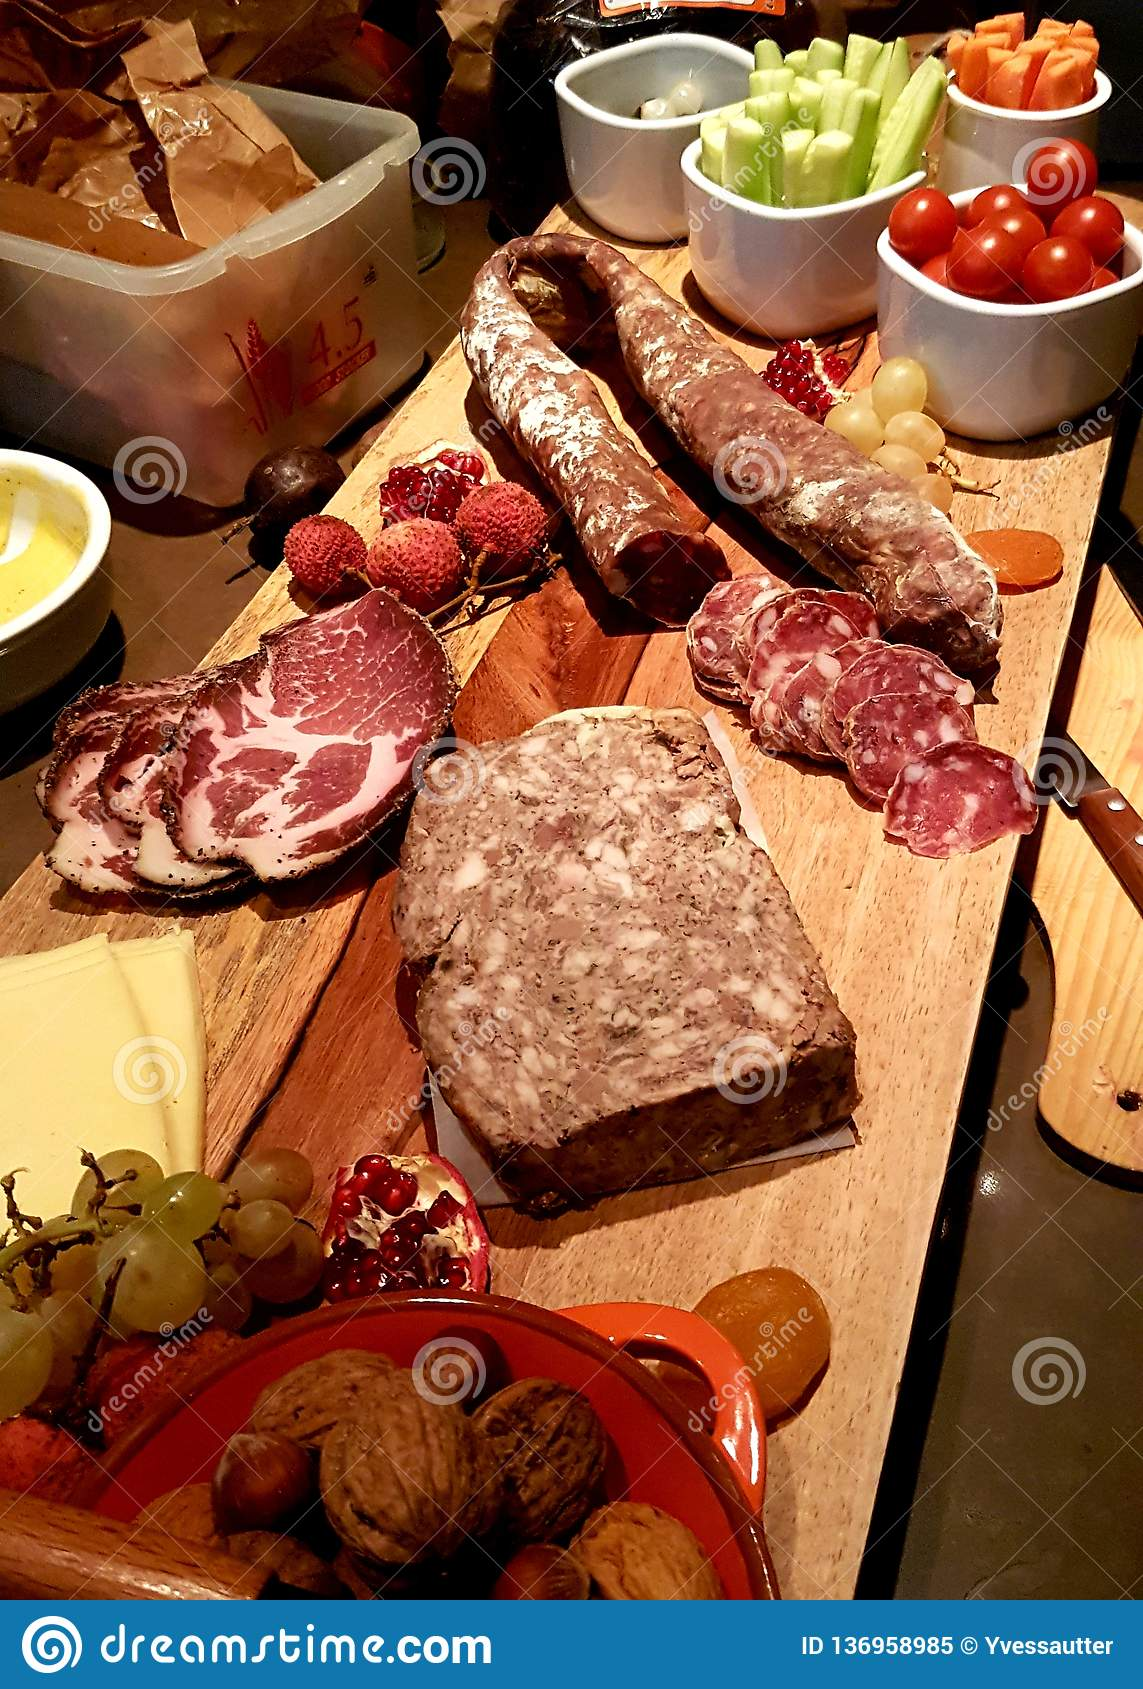 A nice coldcut platter selection from Toulouse, France